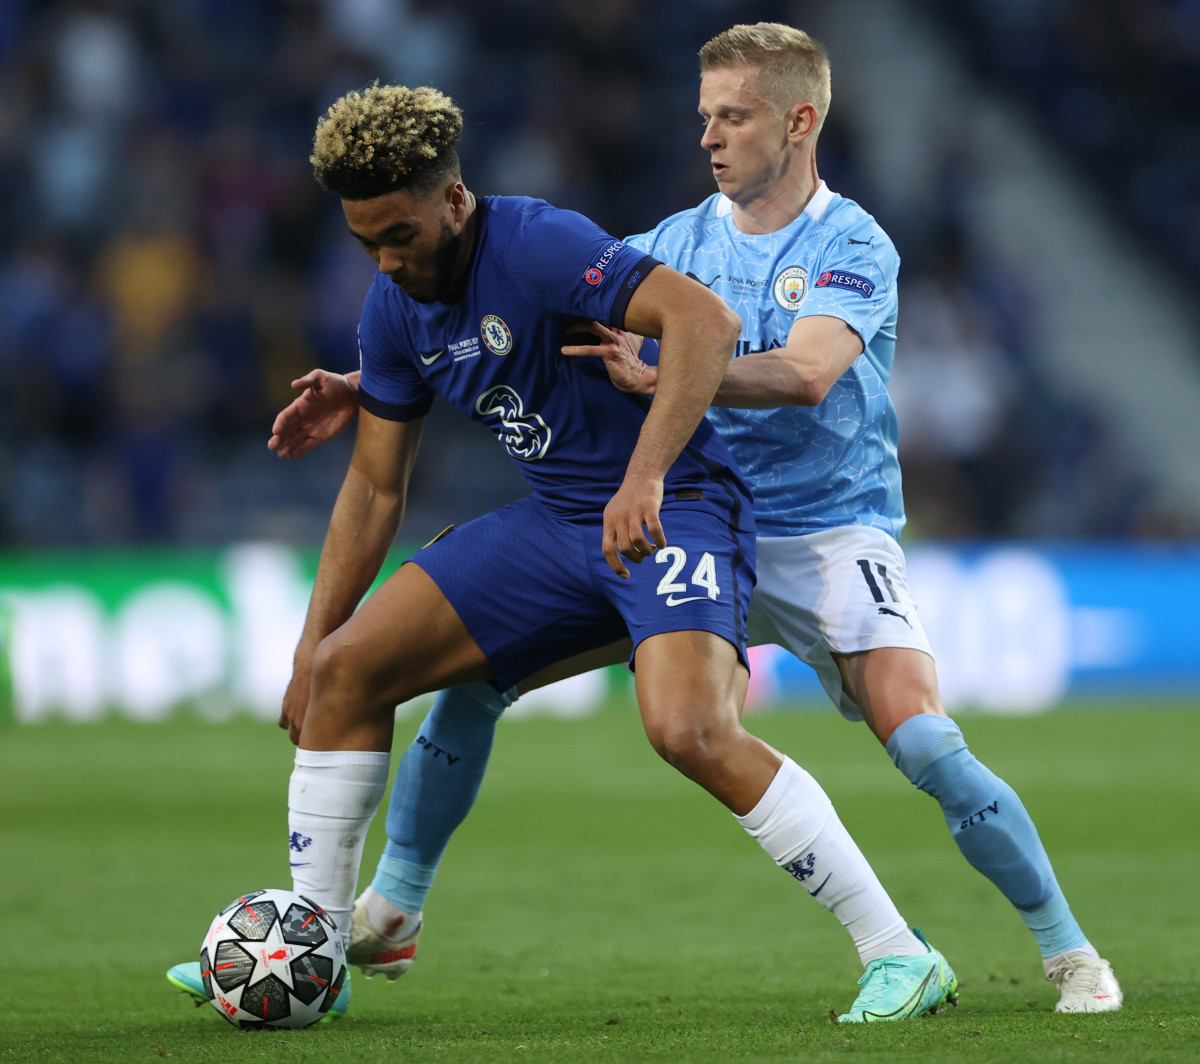 The defender is set to stay at Chelsea